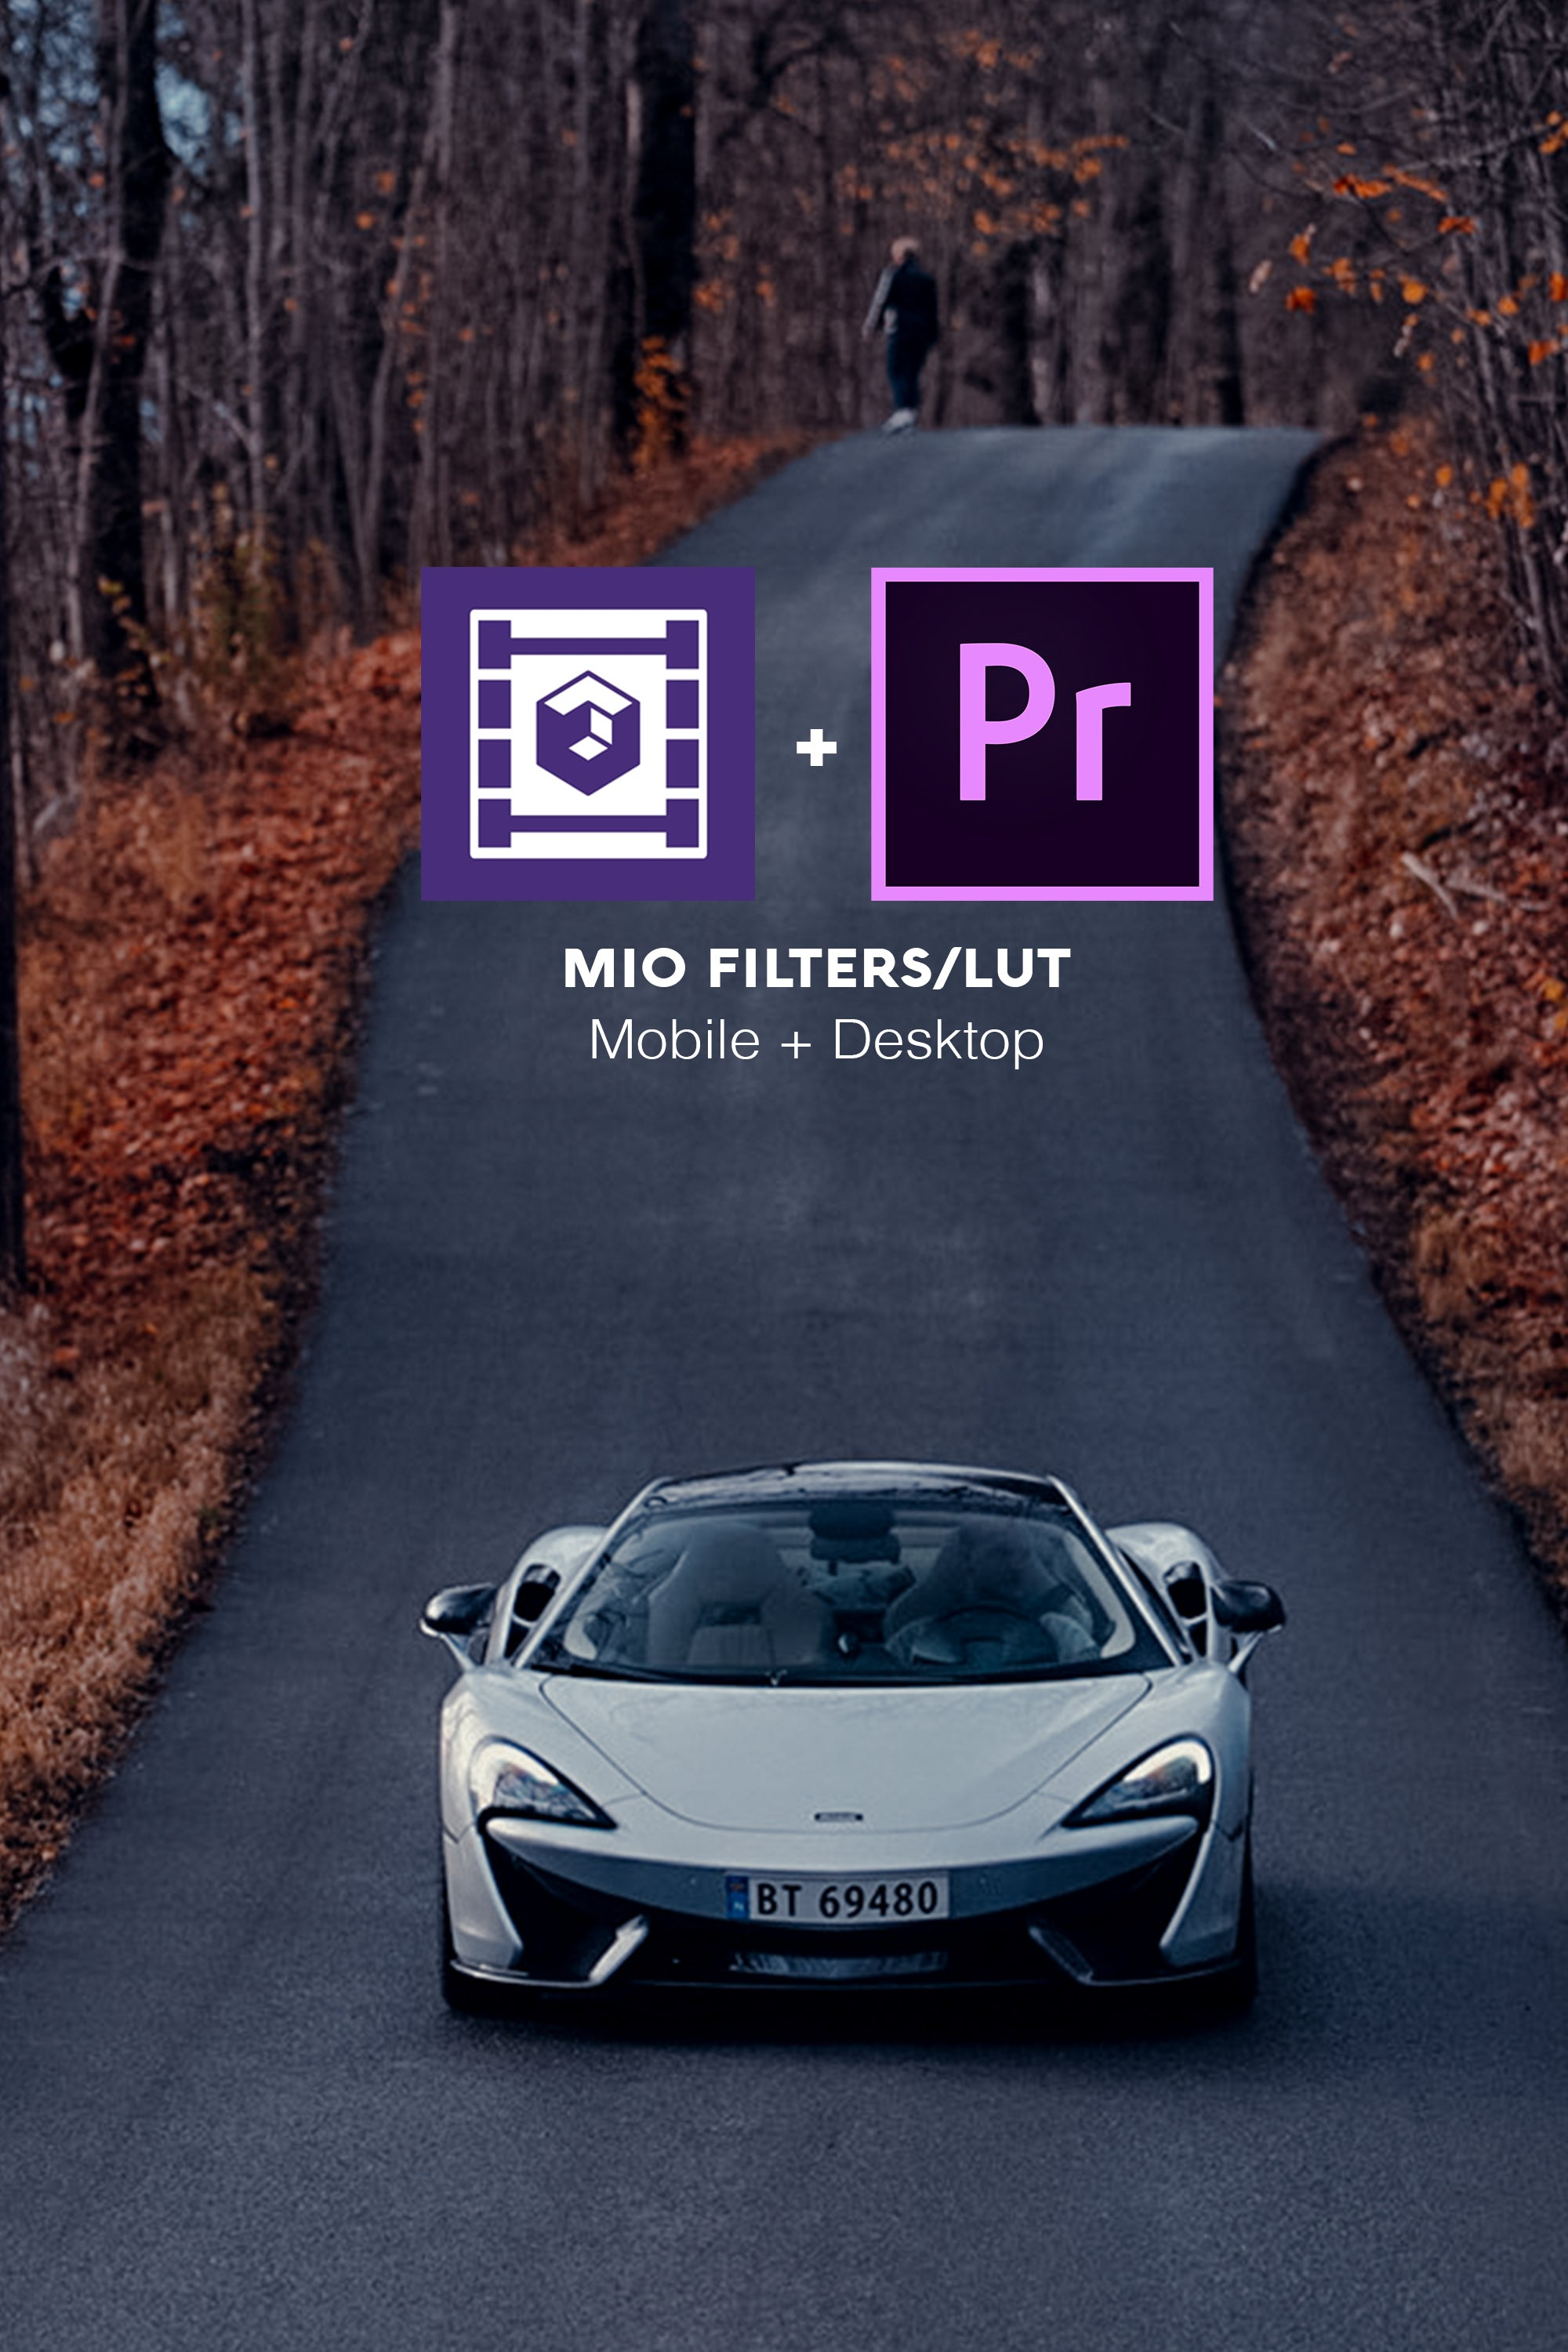 Mio Video LUT filters